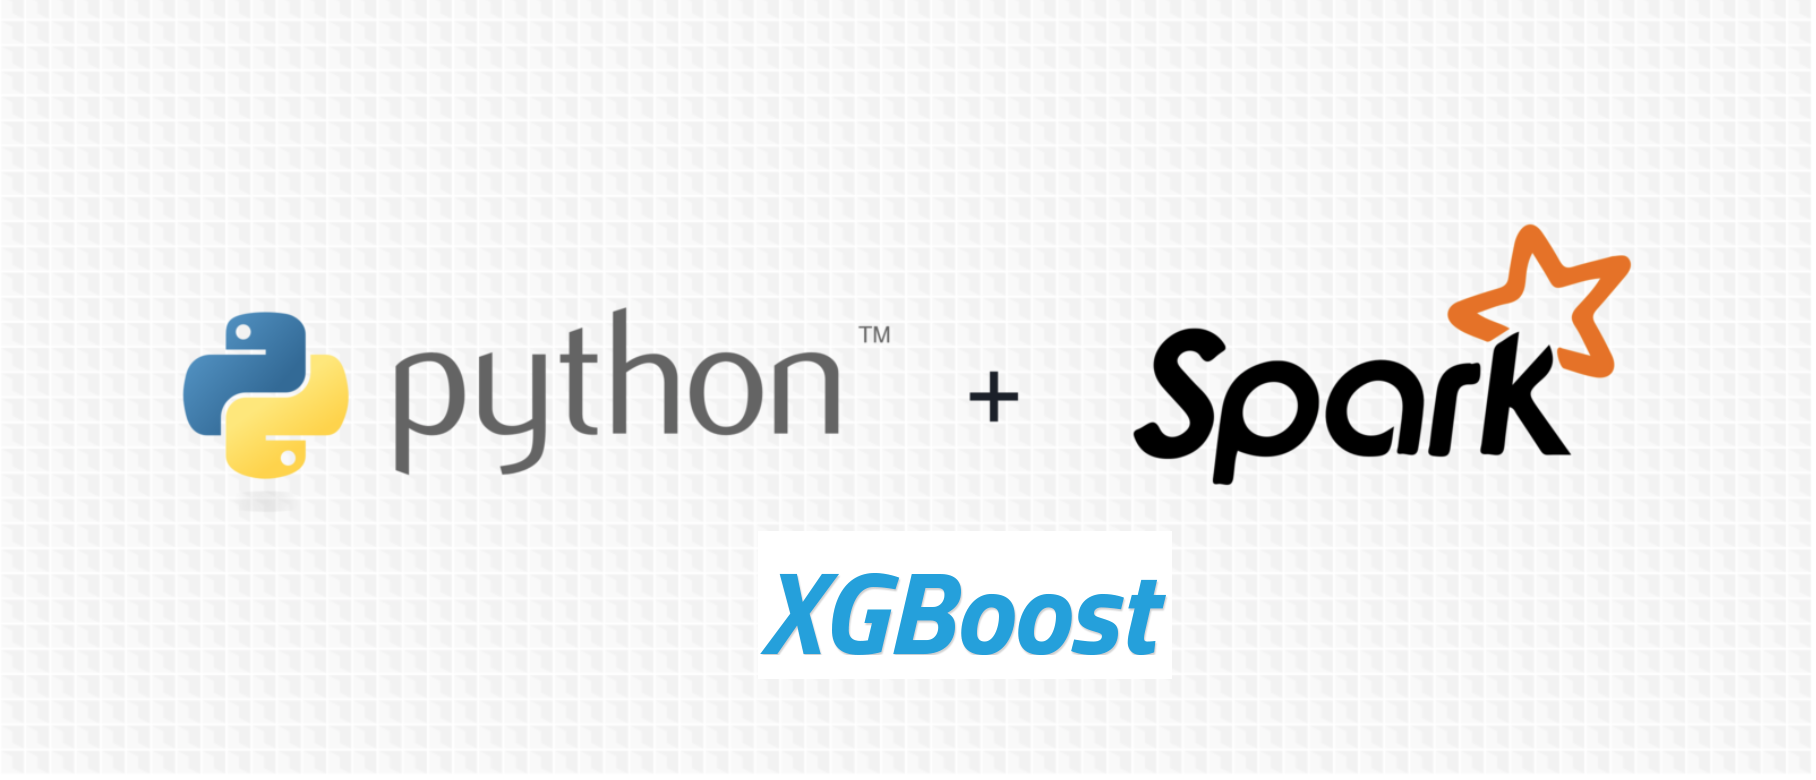 PySpark ML and XGBoost full integration tested on the Kaggle